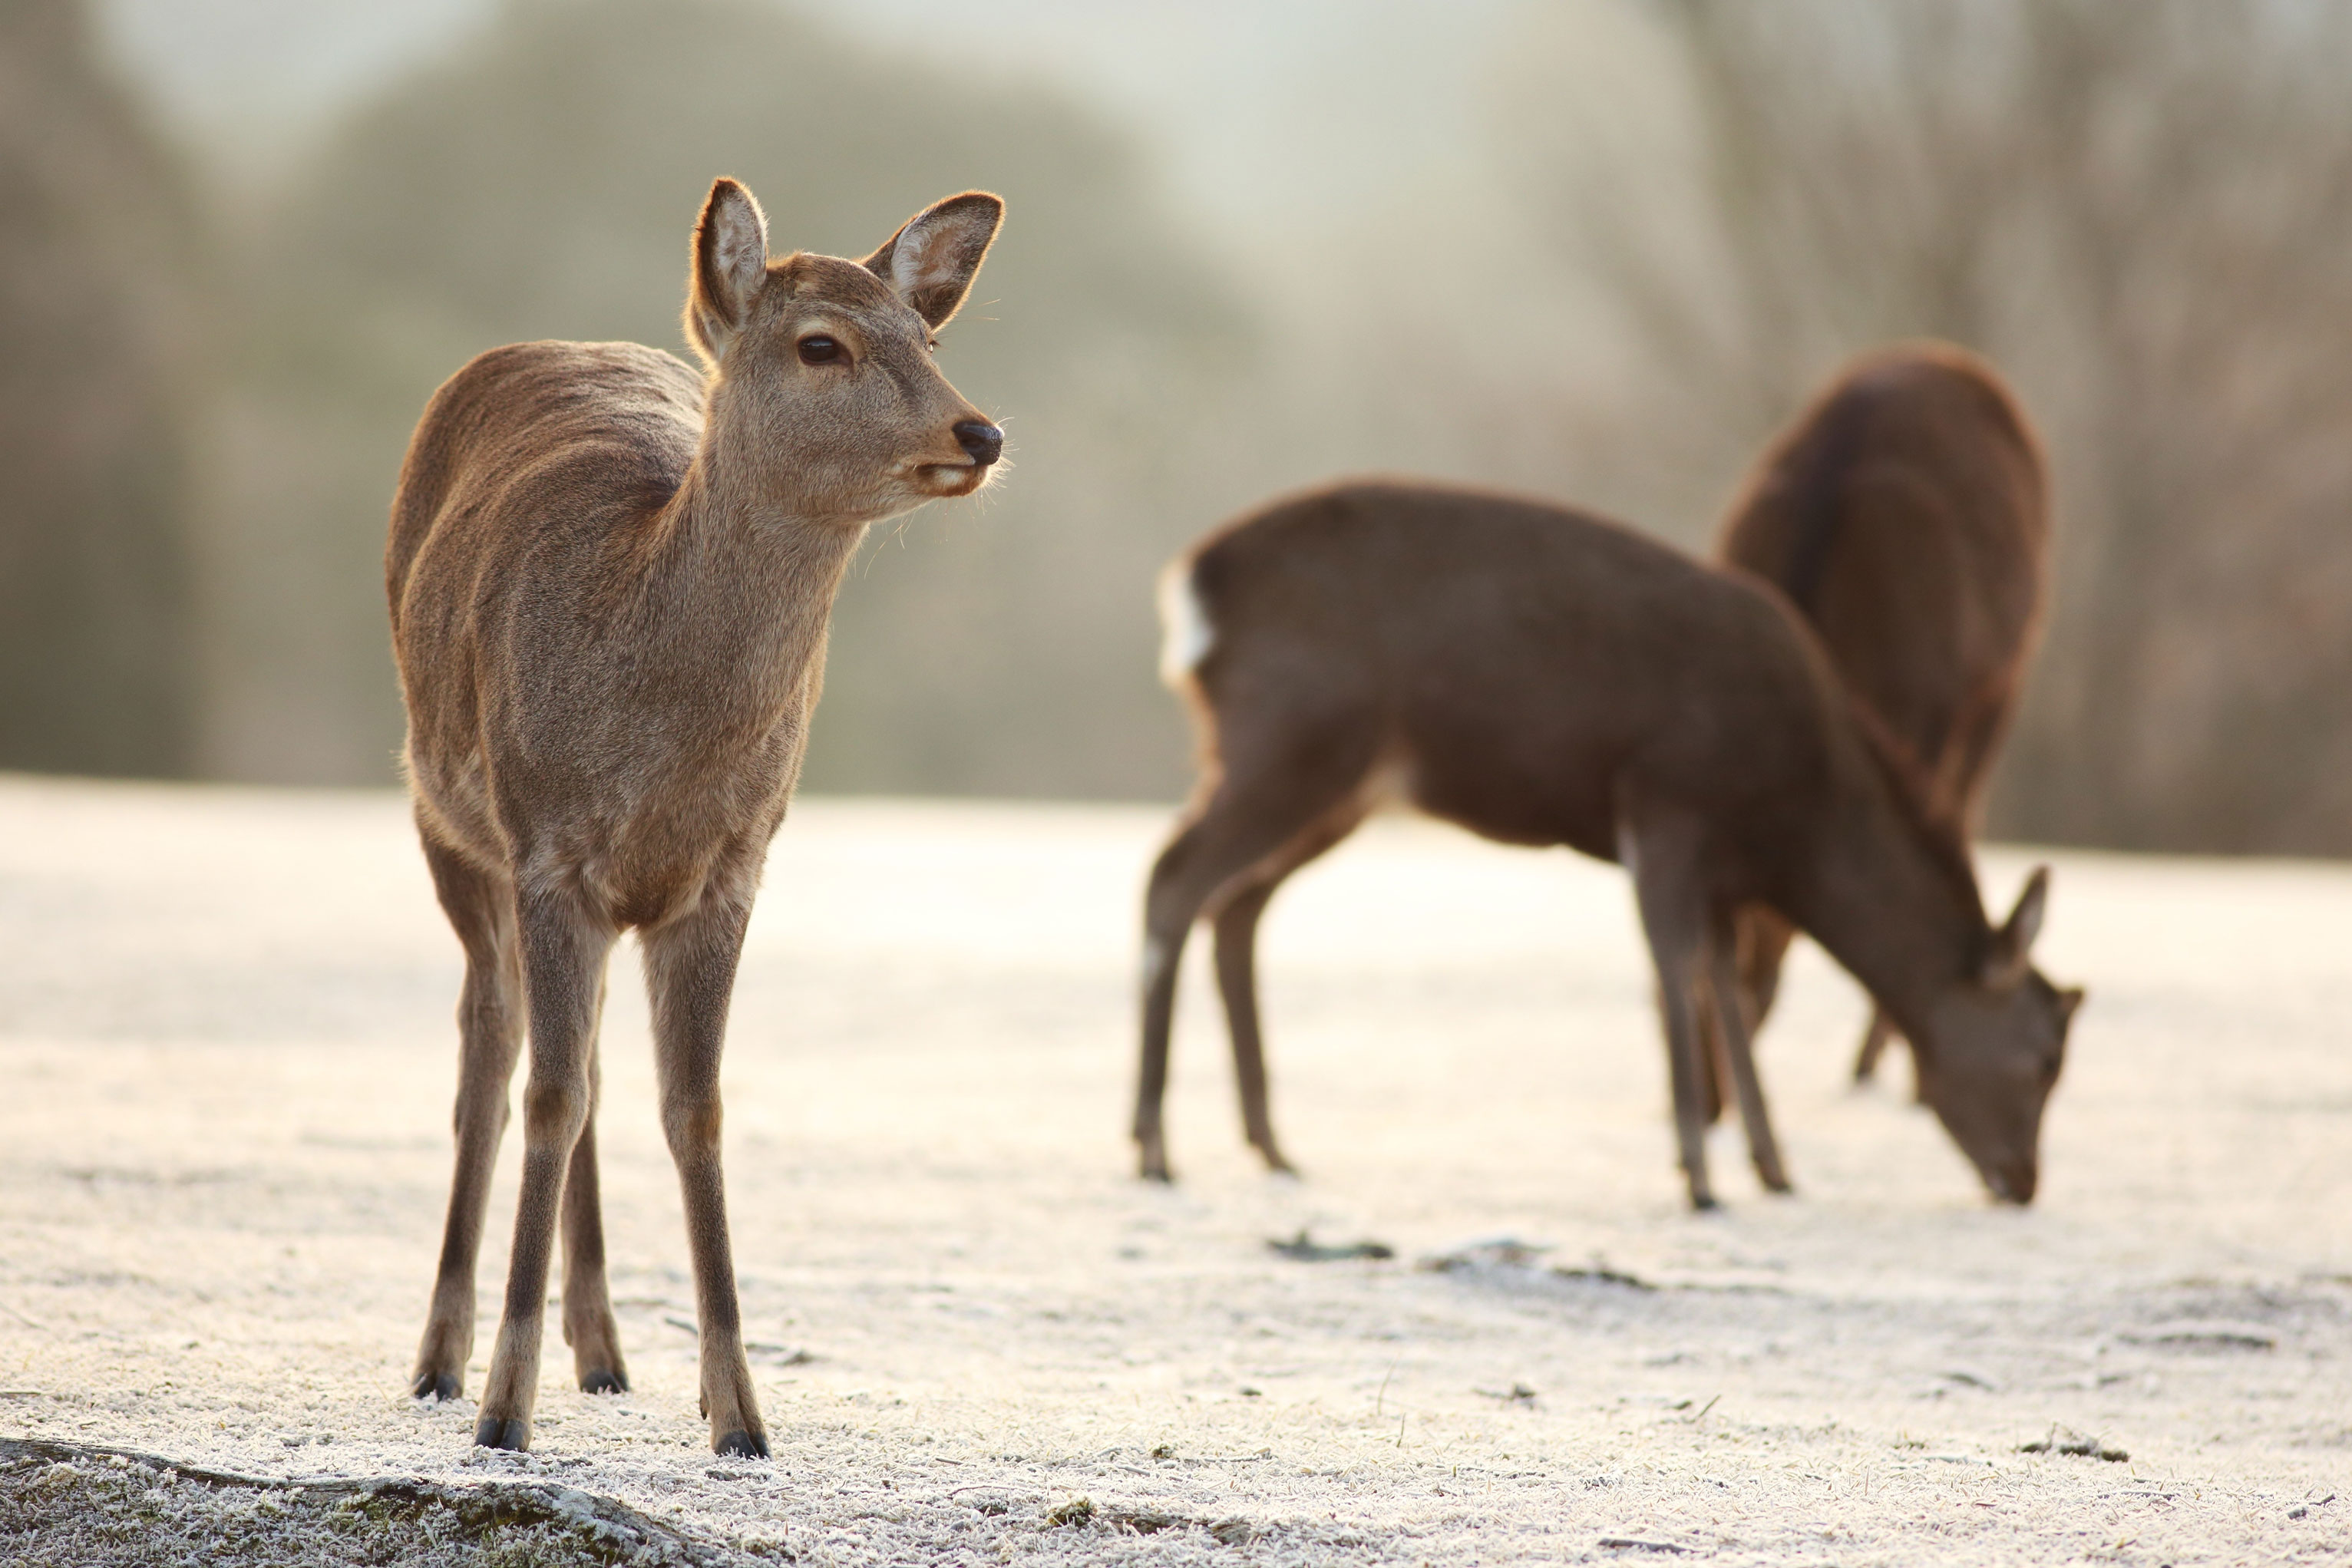 animals_deer_5760x3840_wallpap_5760x3840_animalhi.com